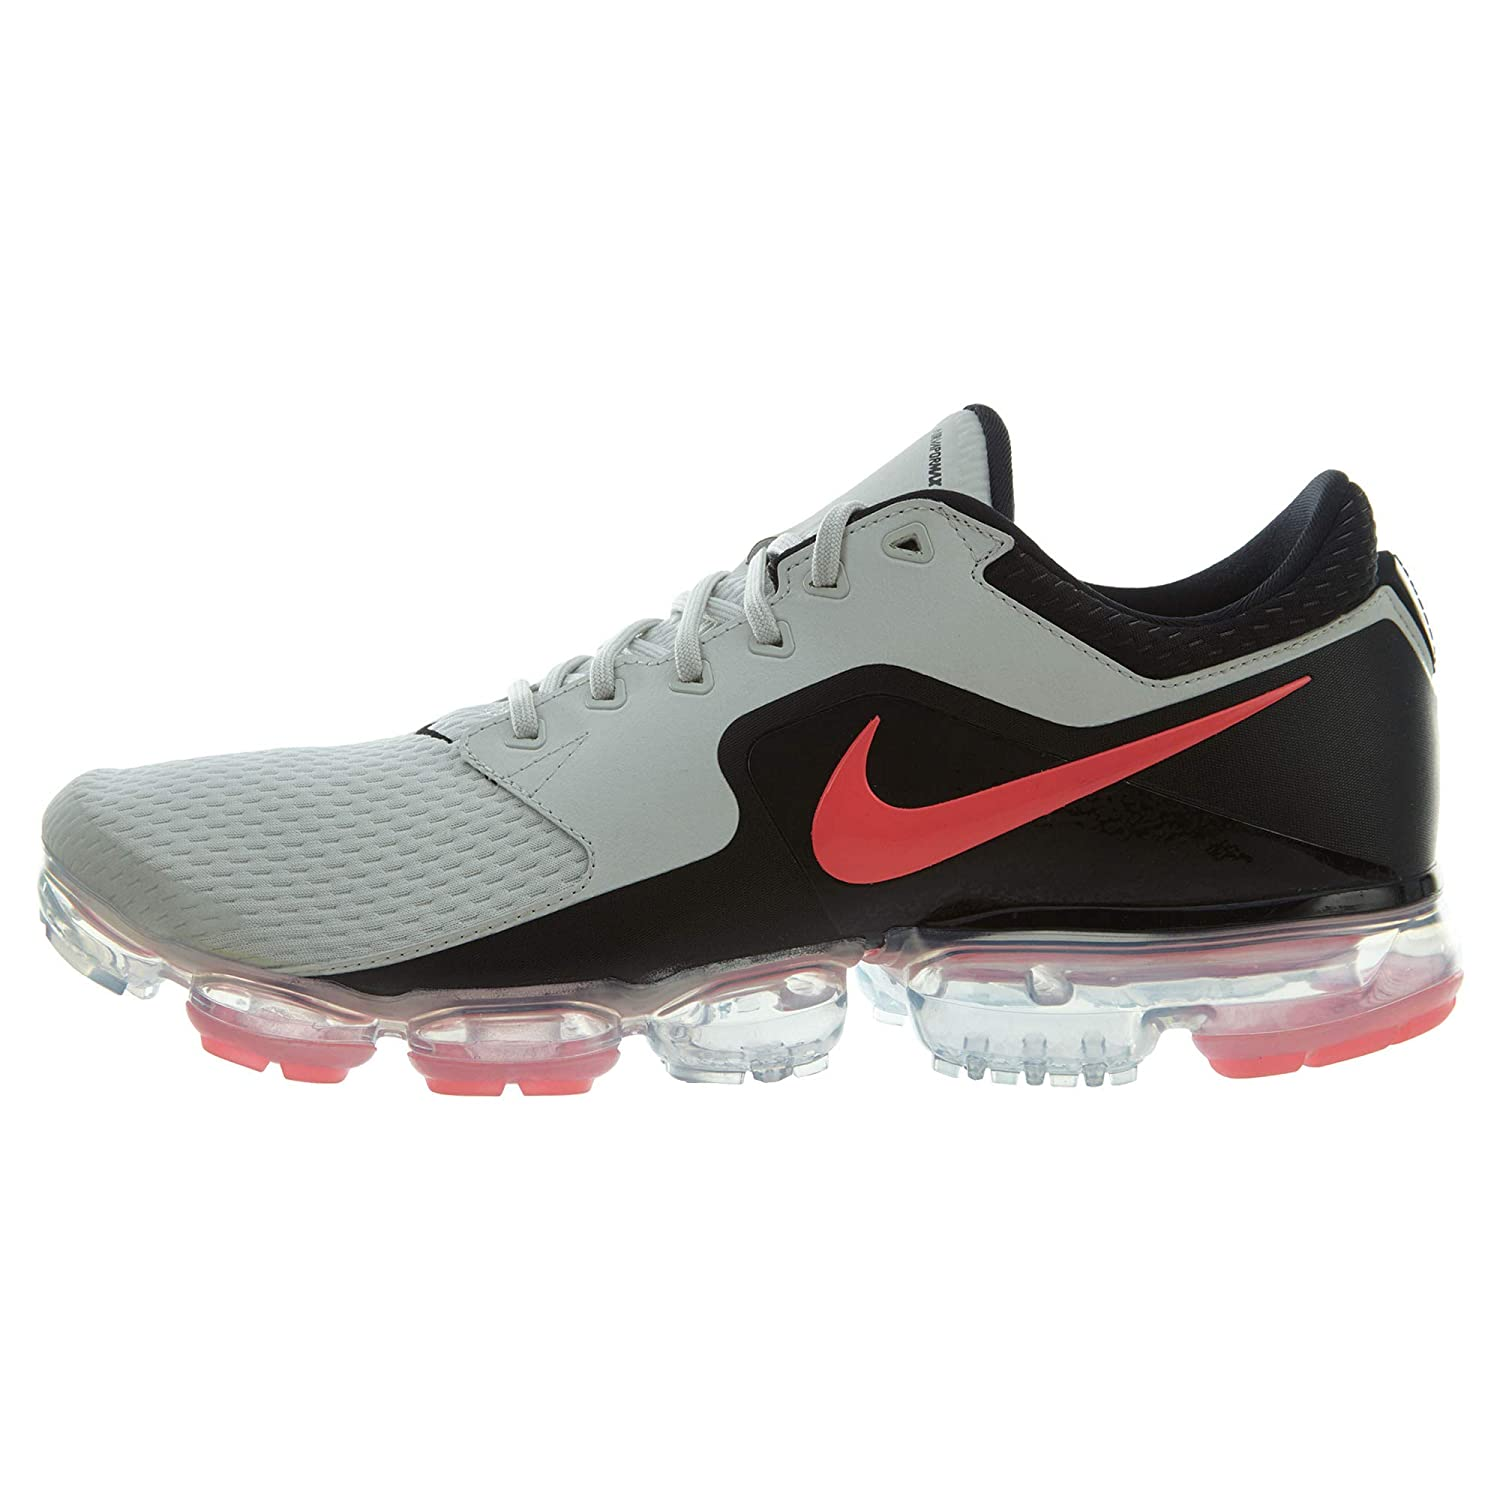 best website 01991 3a542 Amazon.com   Nike Men s Air Vapormax Running Shoes   Shoes